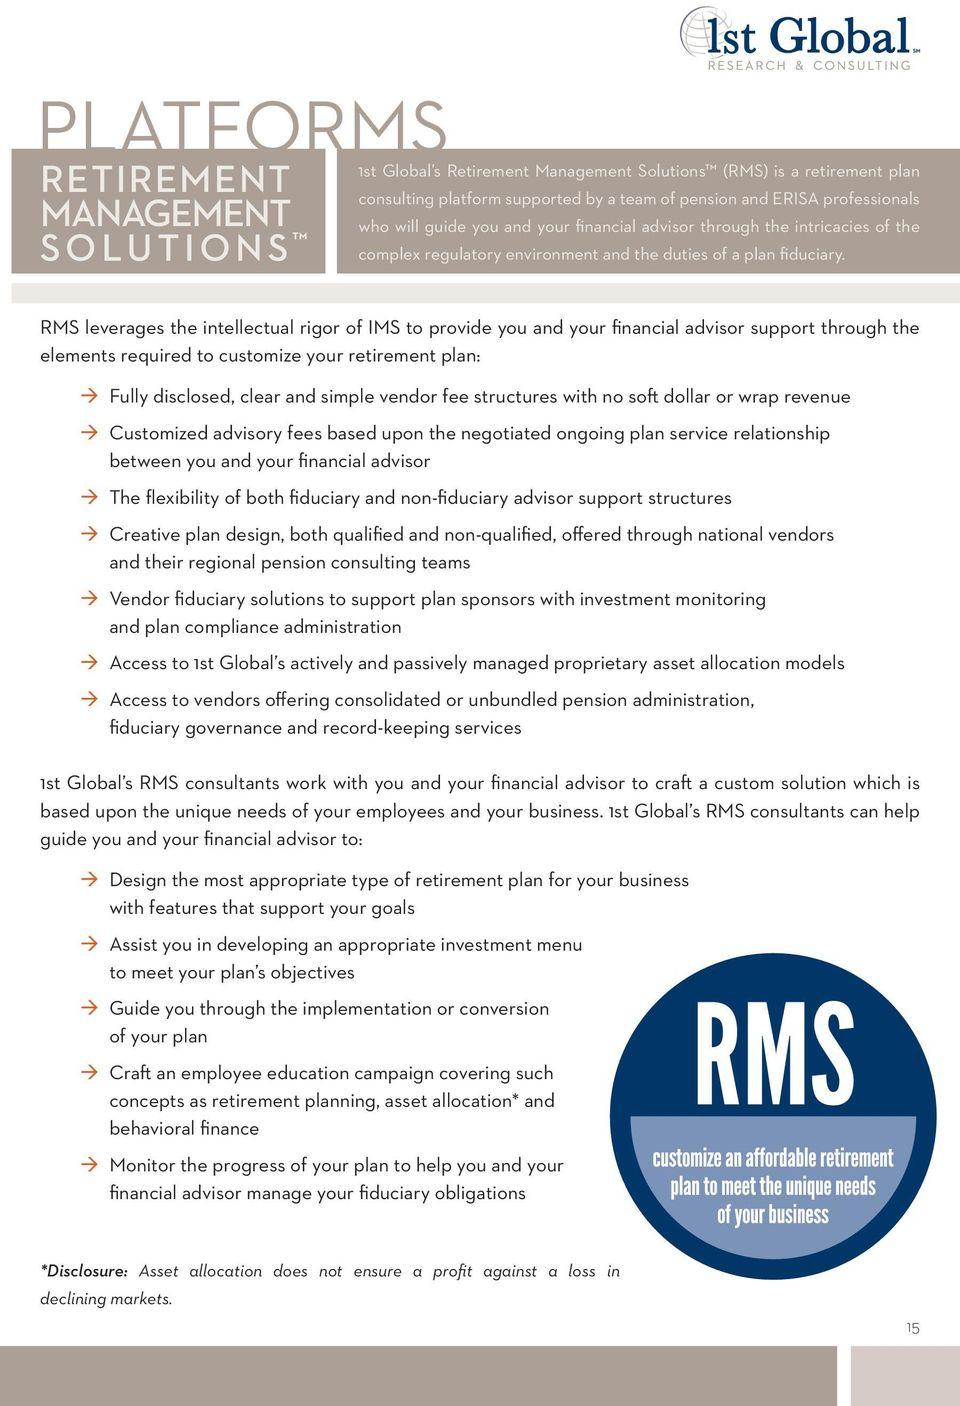 RMS leverages the intellectual rigor of IMS to provide you and your financial advisor support through the elements required to customize your retirement plan: à Fully disclosed, clear and simple